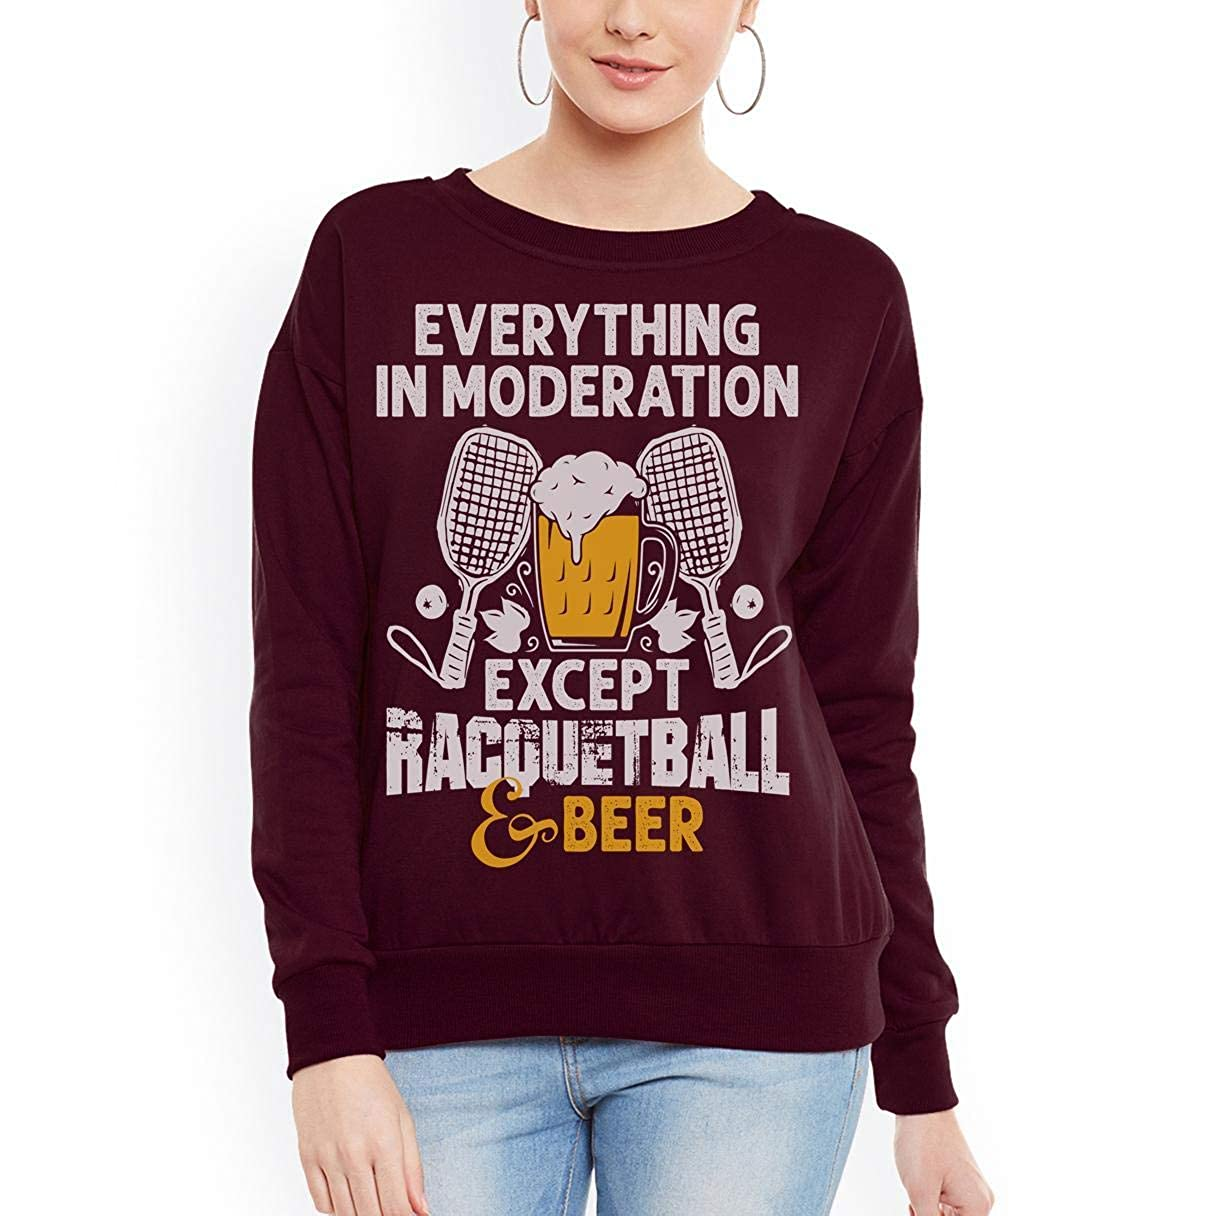 Racquetball Funny Racquetball Beer Moderation Women Sweatshirt tee